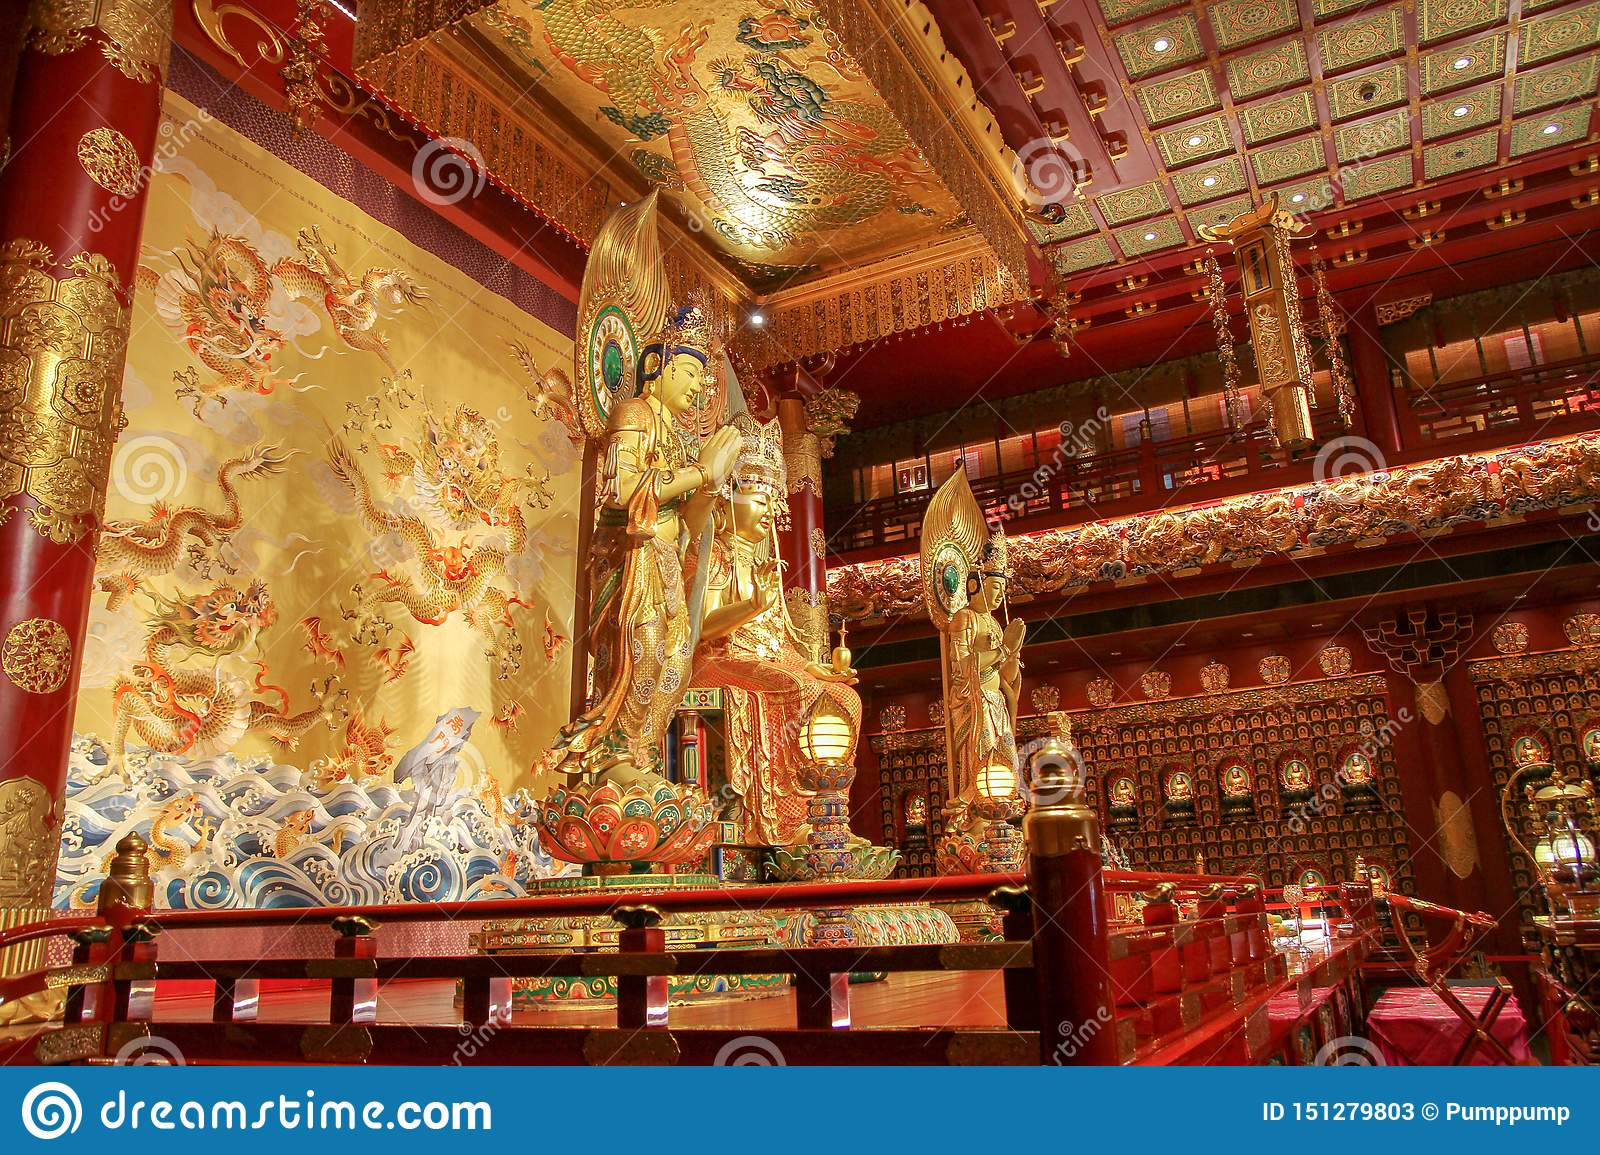 CHINATOWN,SINGAPORE - April 11, 2016:The Interior View Of The Richely Ornated Buddha Tooth Relic